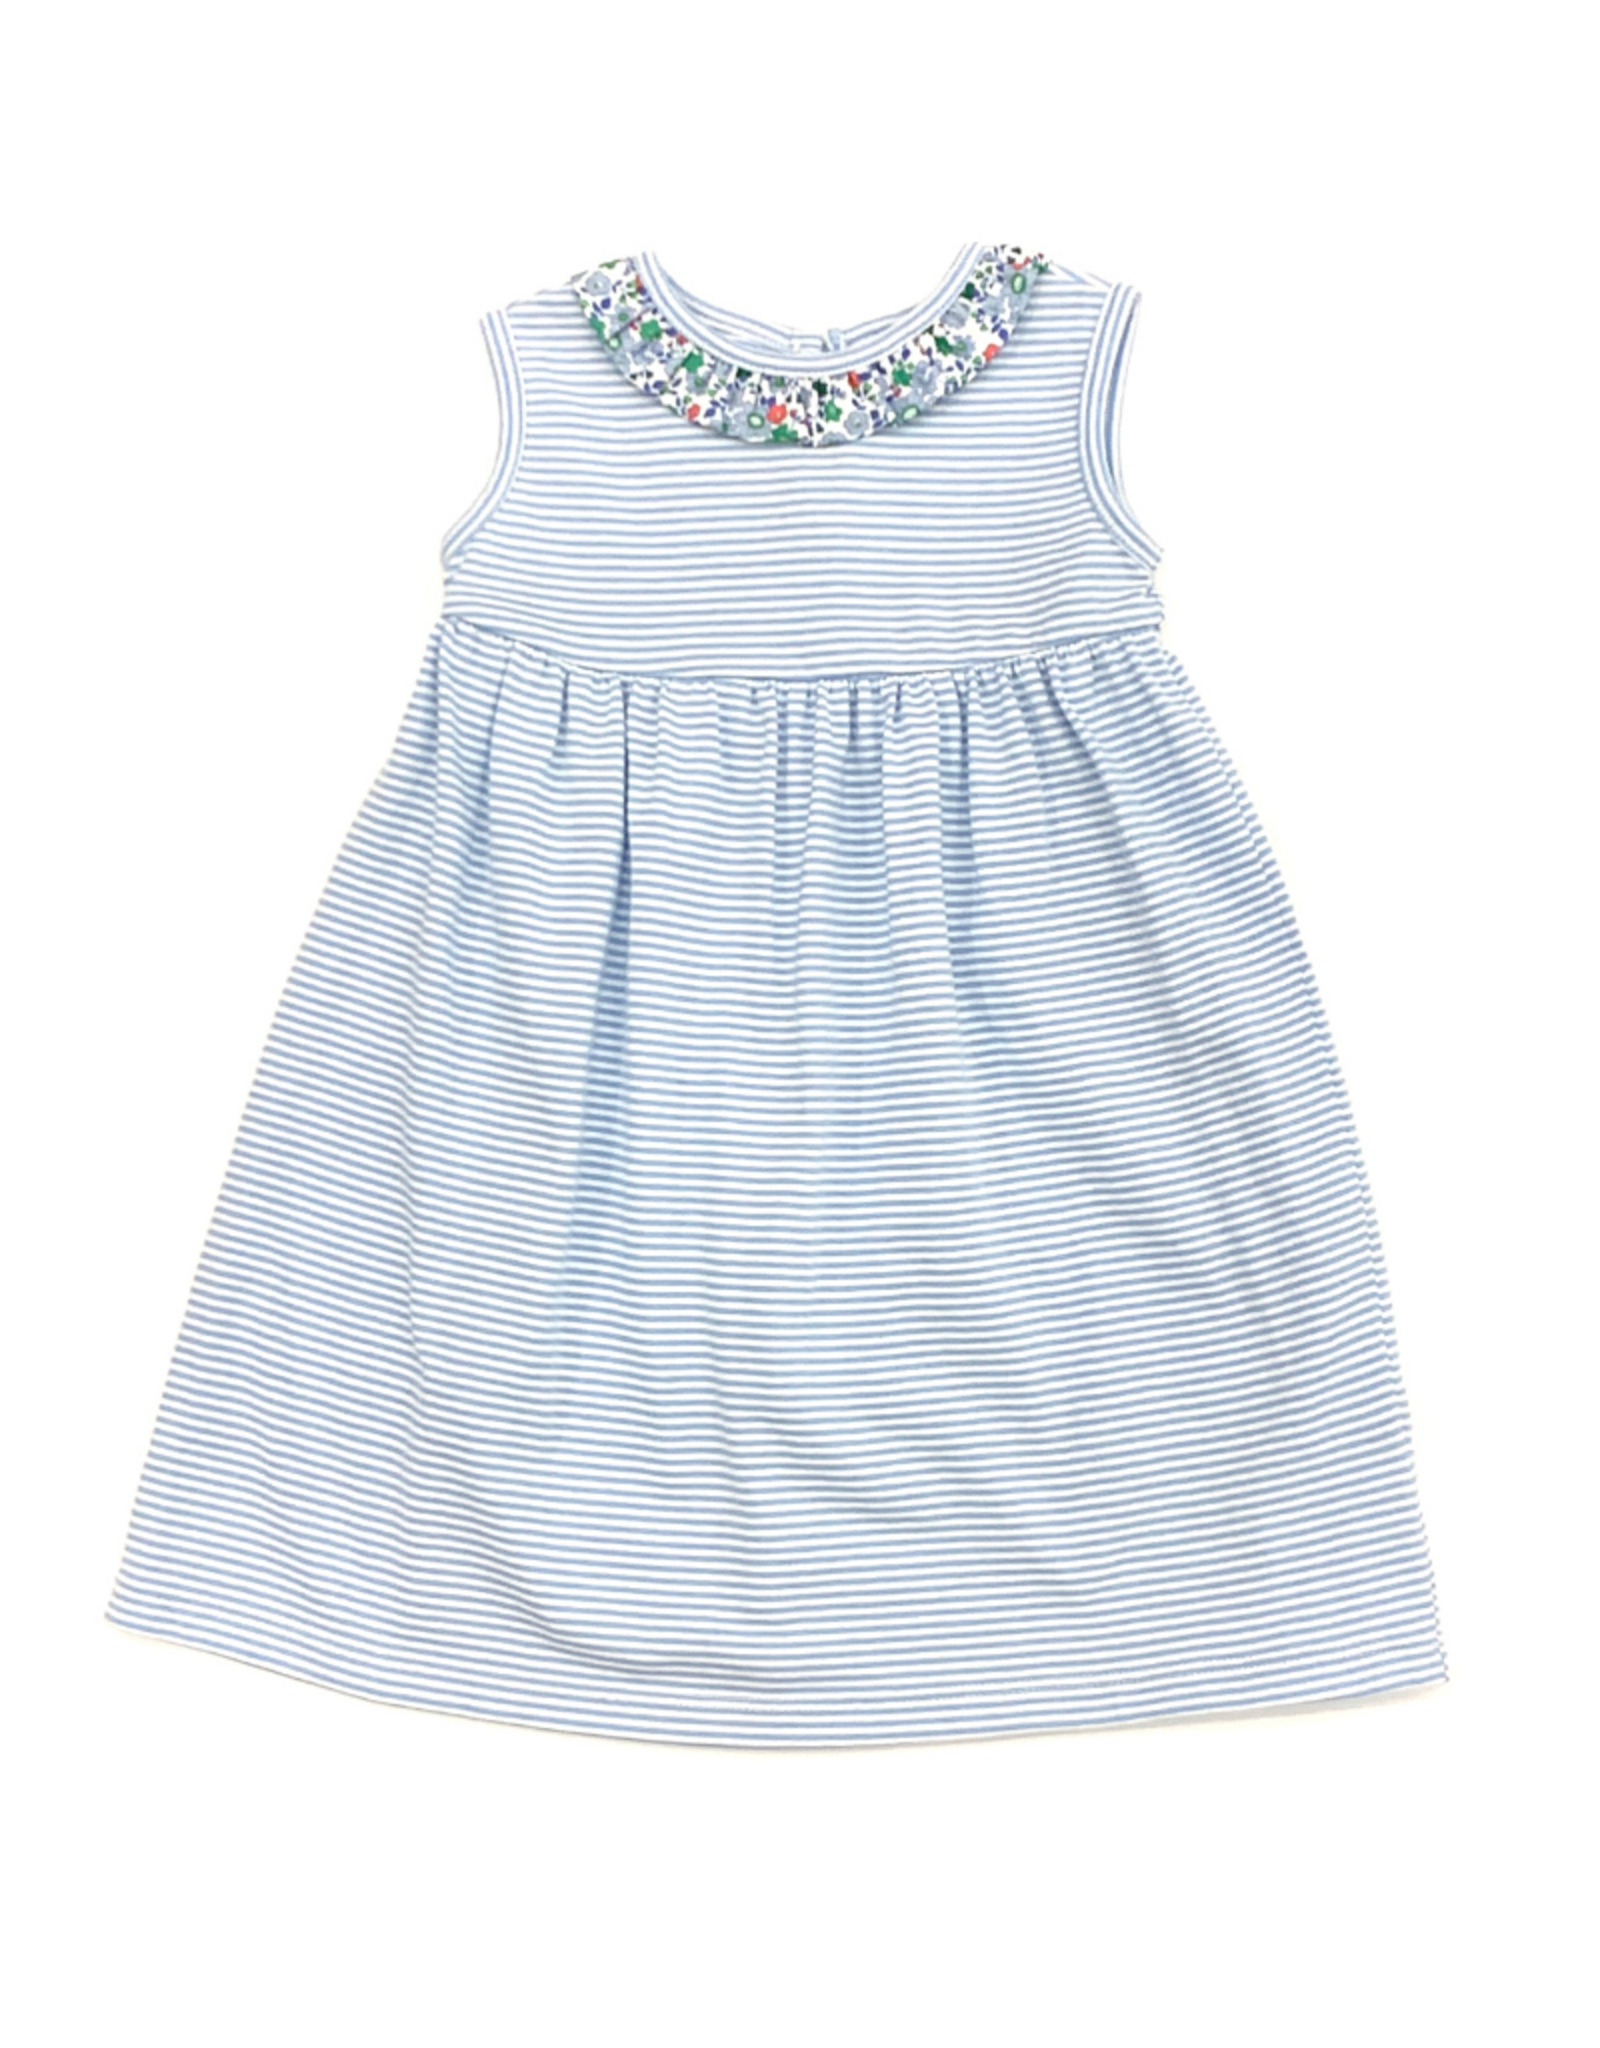 Peggy Green Cici Dress - Blue Candy Stripe With Salem Floral Ruffle